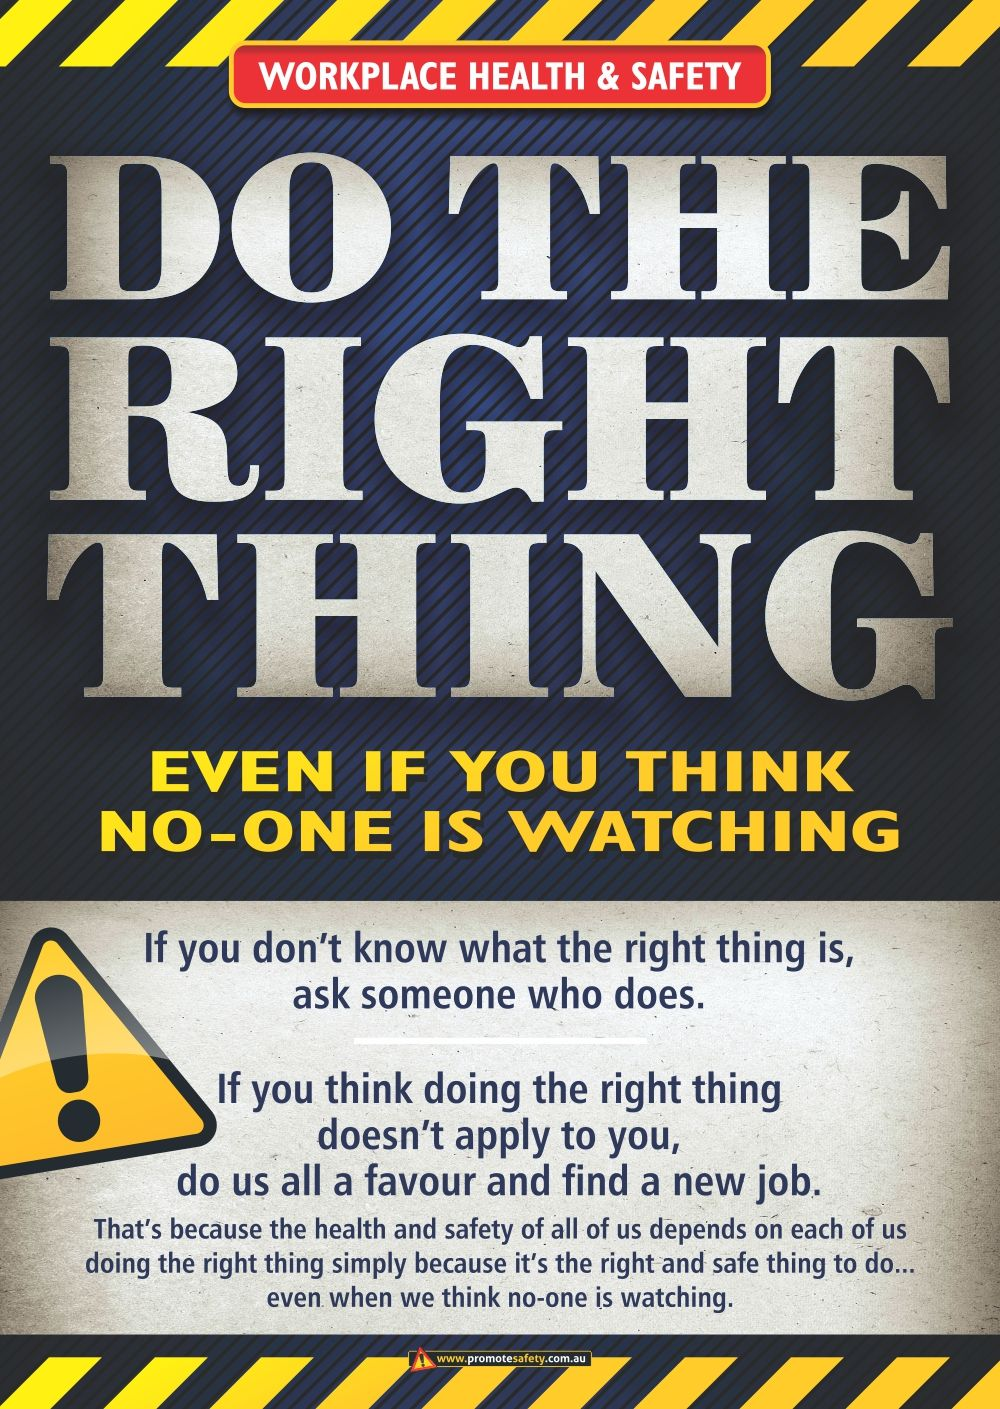 A3 size Workplace Safety Poster emphasising the importance